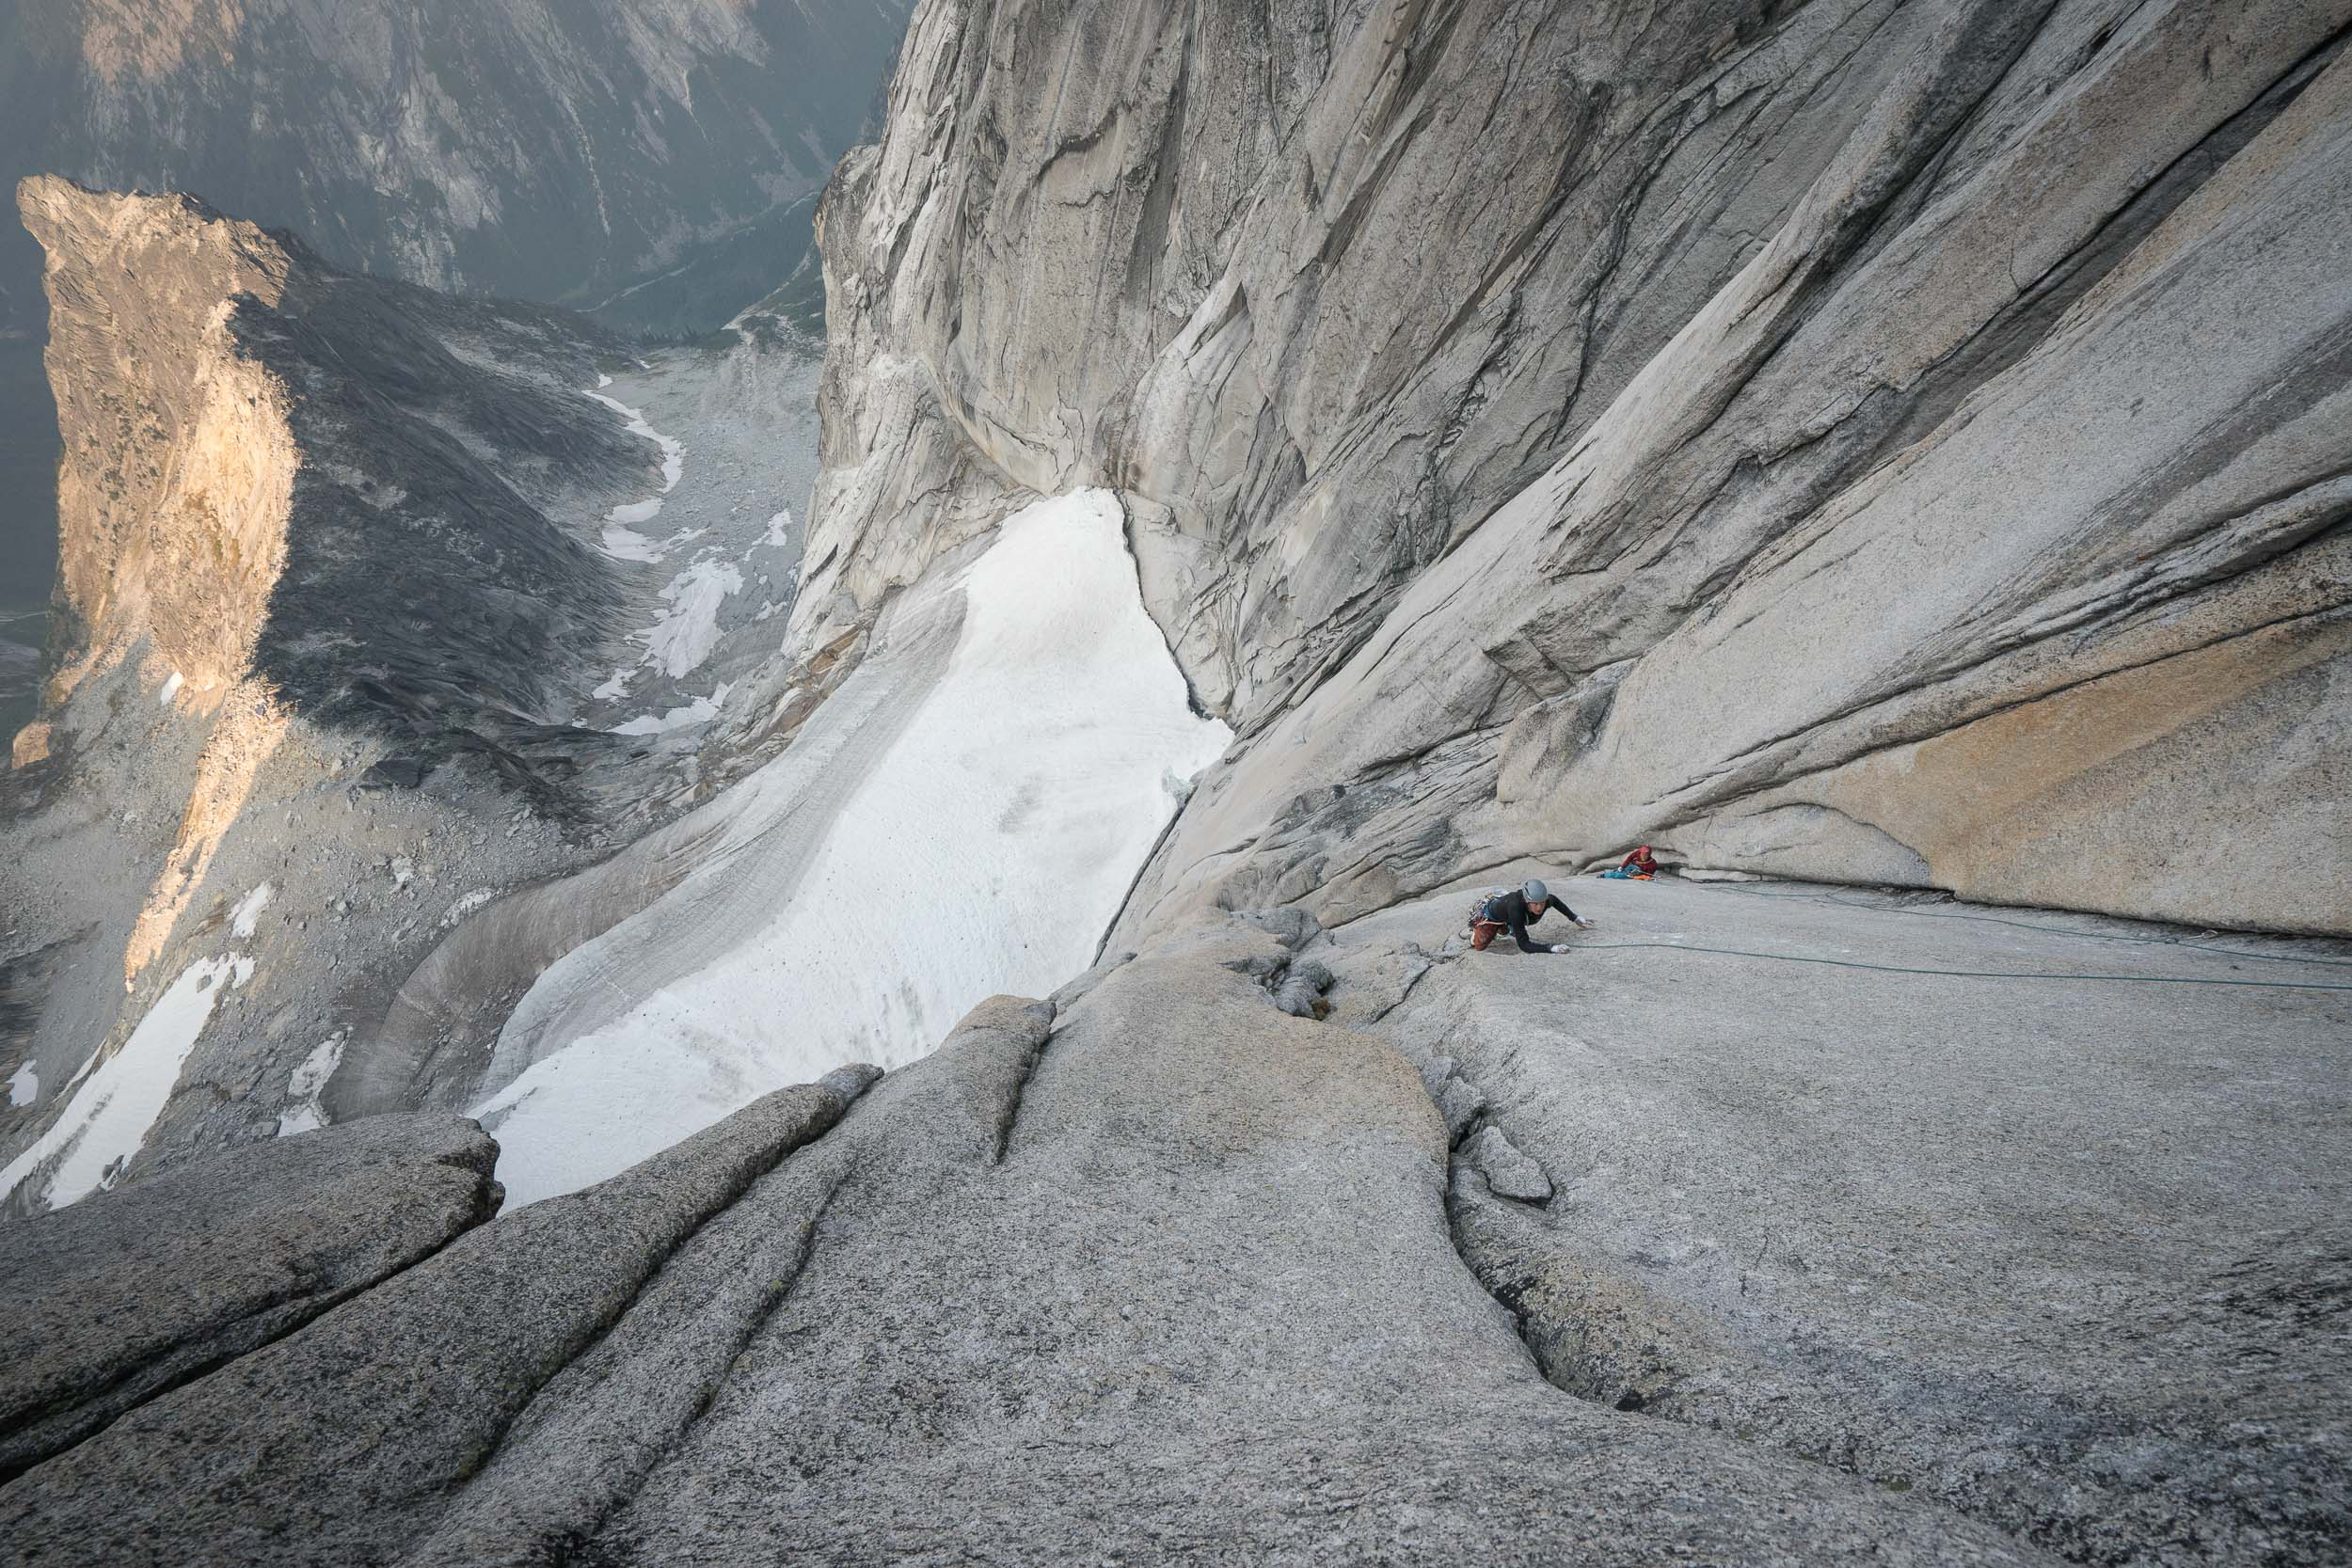 Will Stanhope on the triple link up in the Bugaboos.